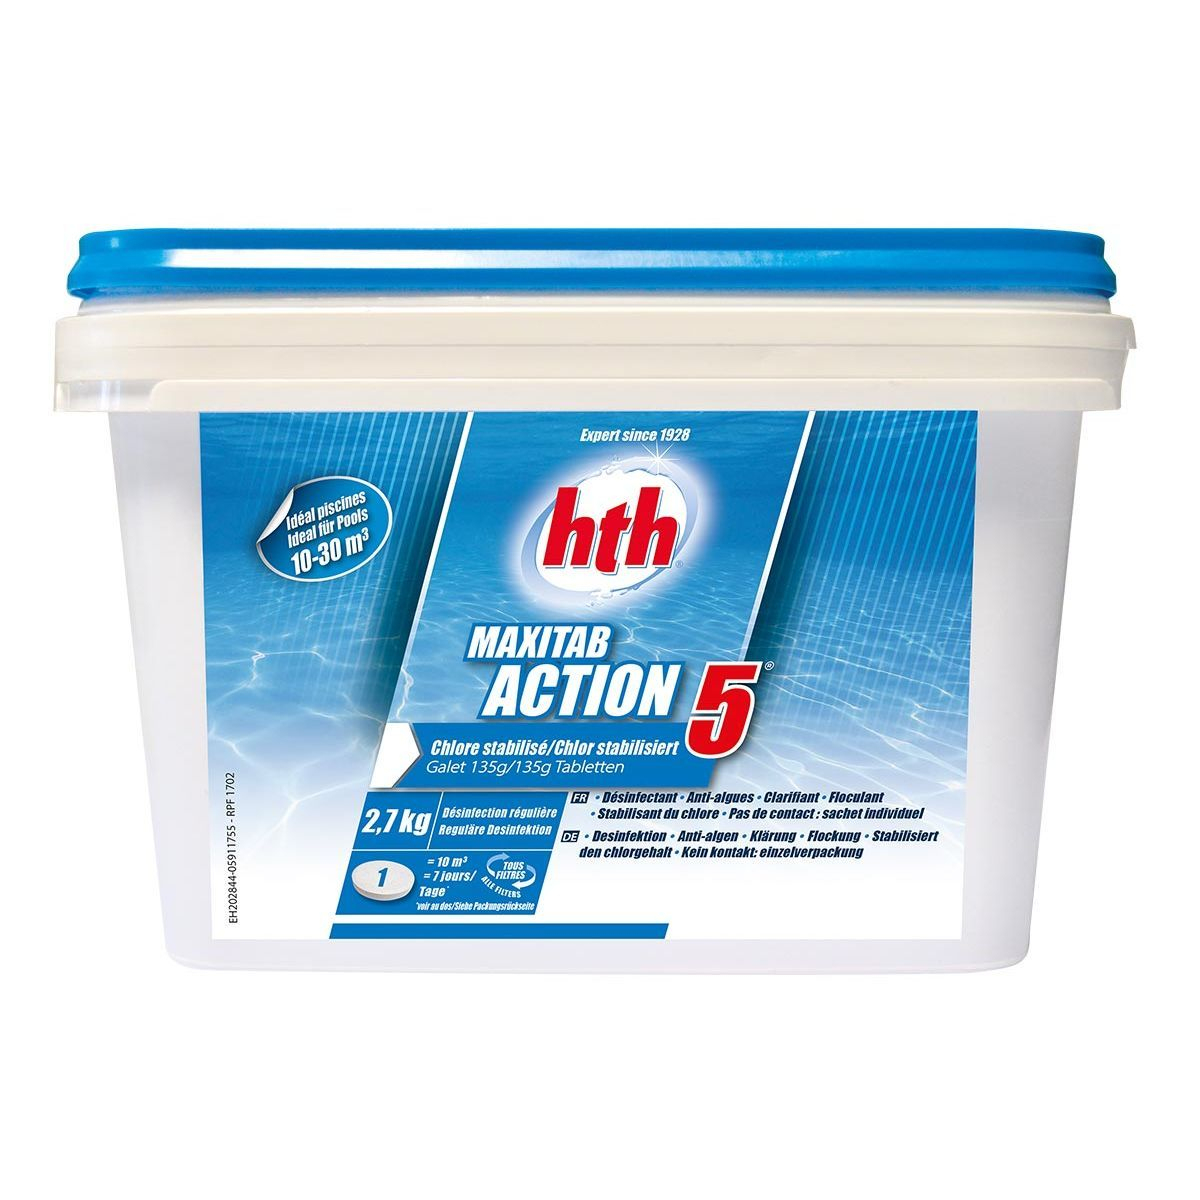 Chlore 5 Actions Maxitab Galets 135 G 2,7 Kg - Hth - Taille ... tout Clarifiant Piscine